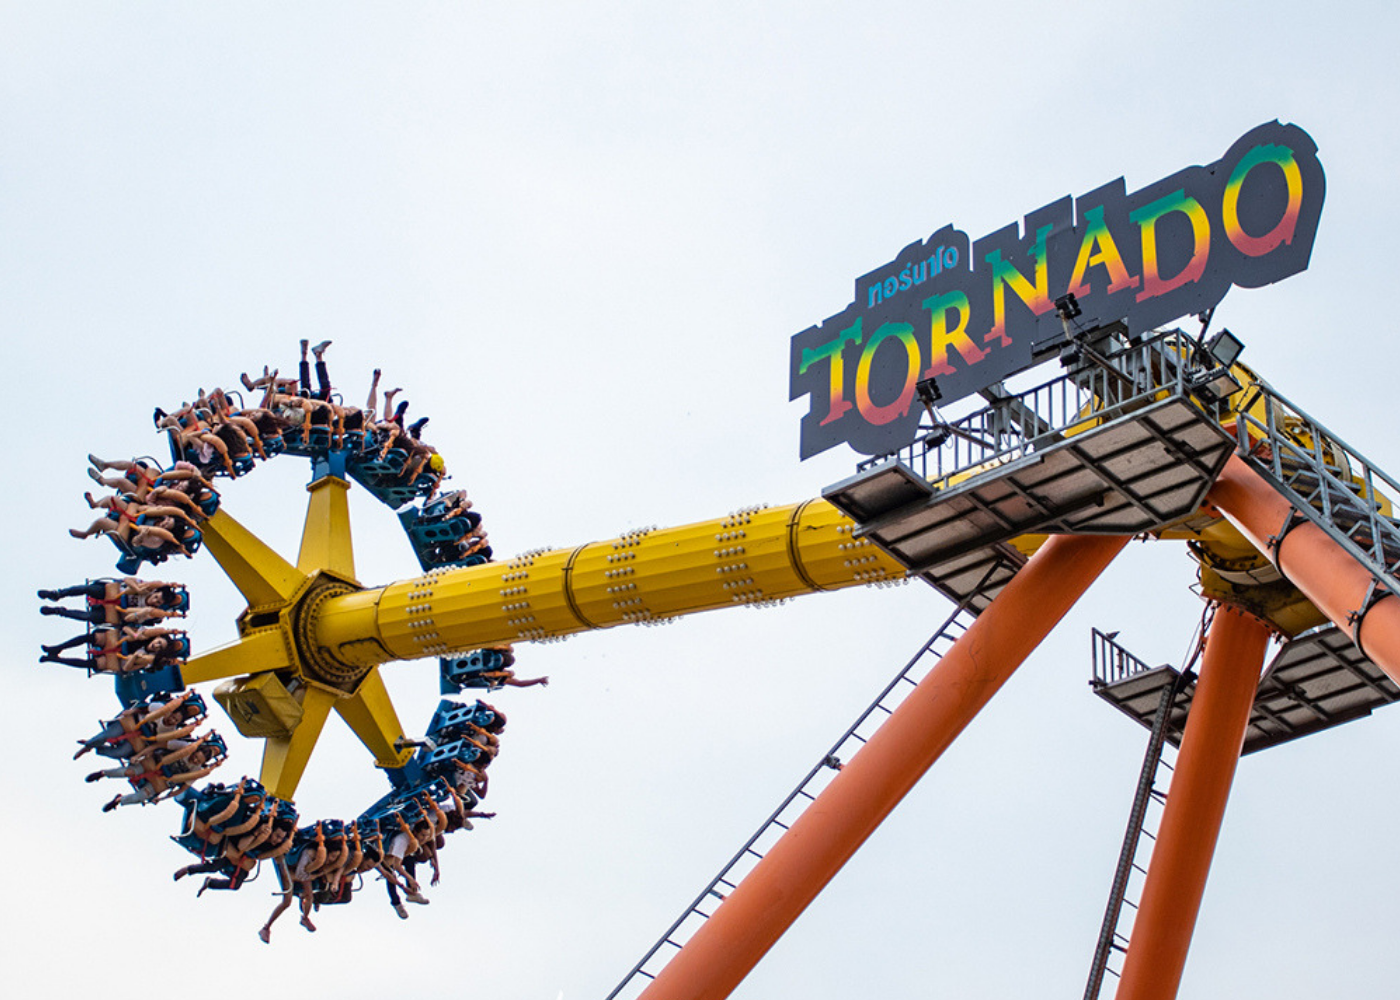 Theme parks in Southeast Asia for adrenaline junkies | Dream World Thailand